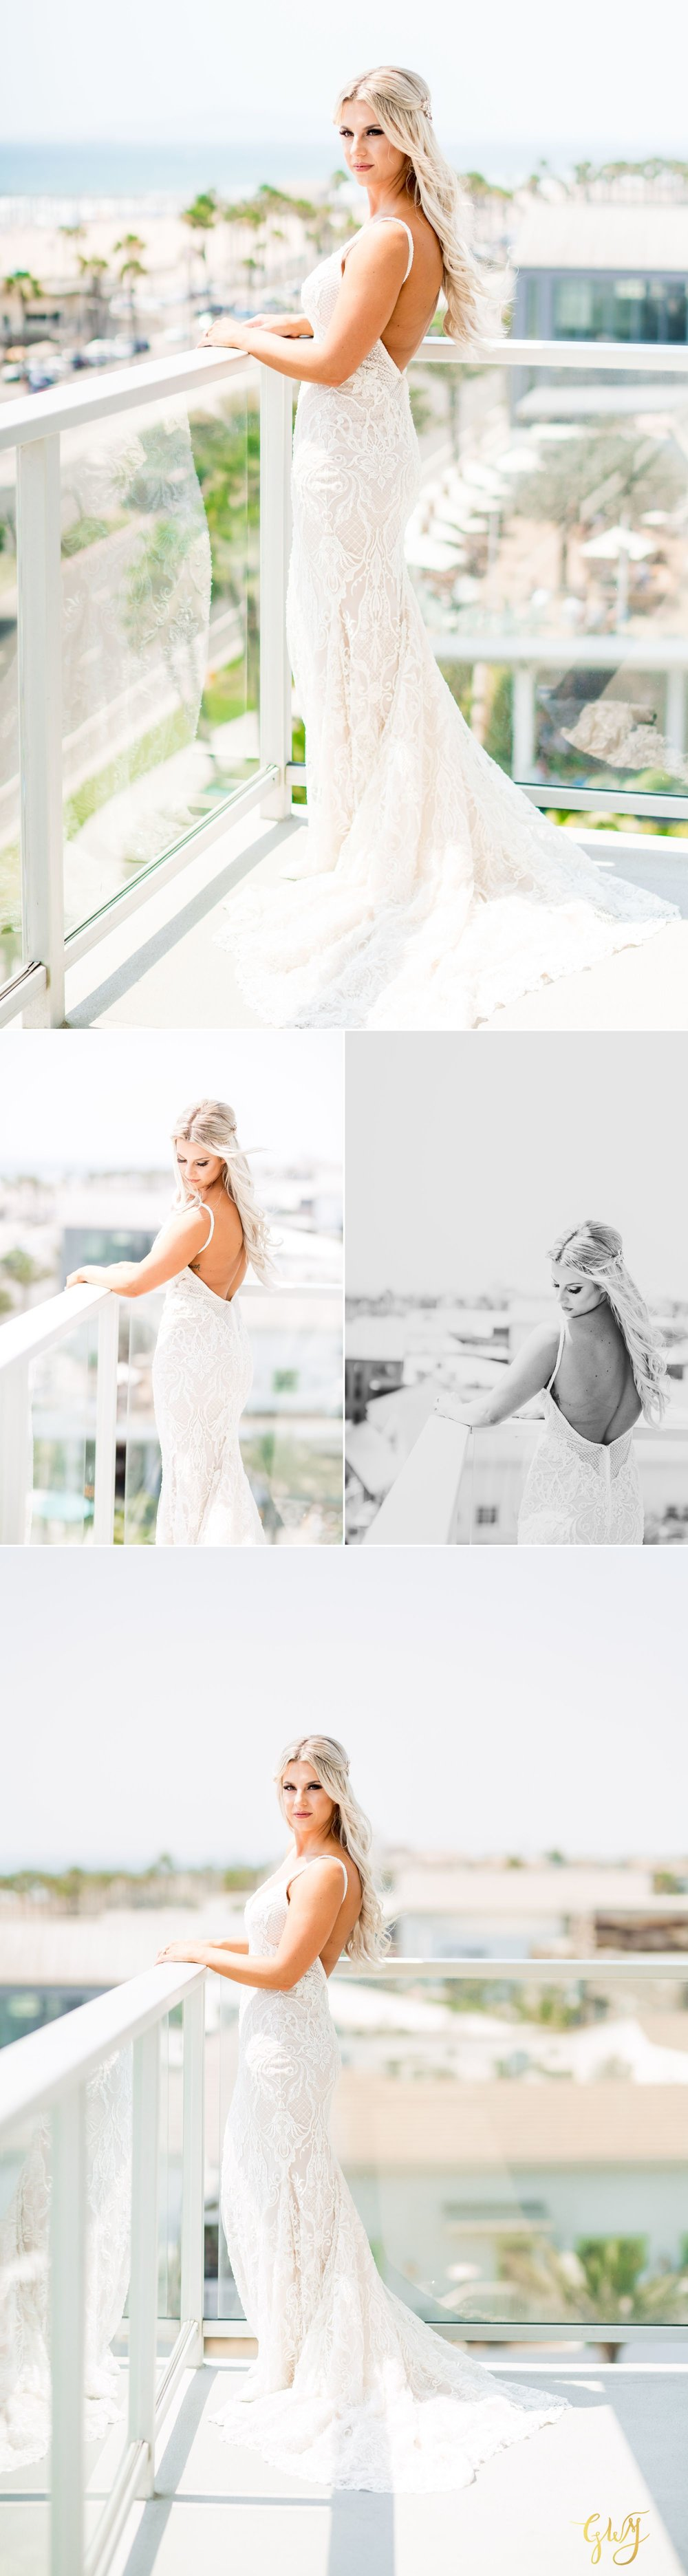 Christien + Crystal Pasea Hotel & Spa Huntington Beach Wedding by Glass Woods Media 12.jpg